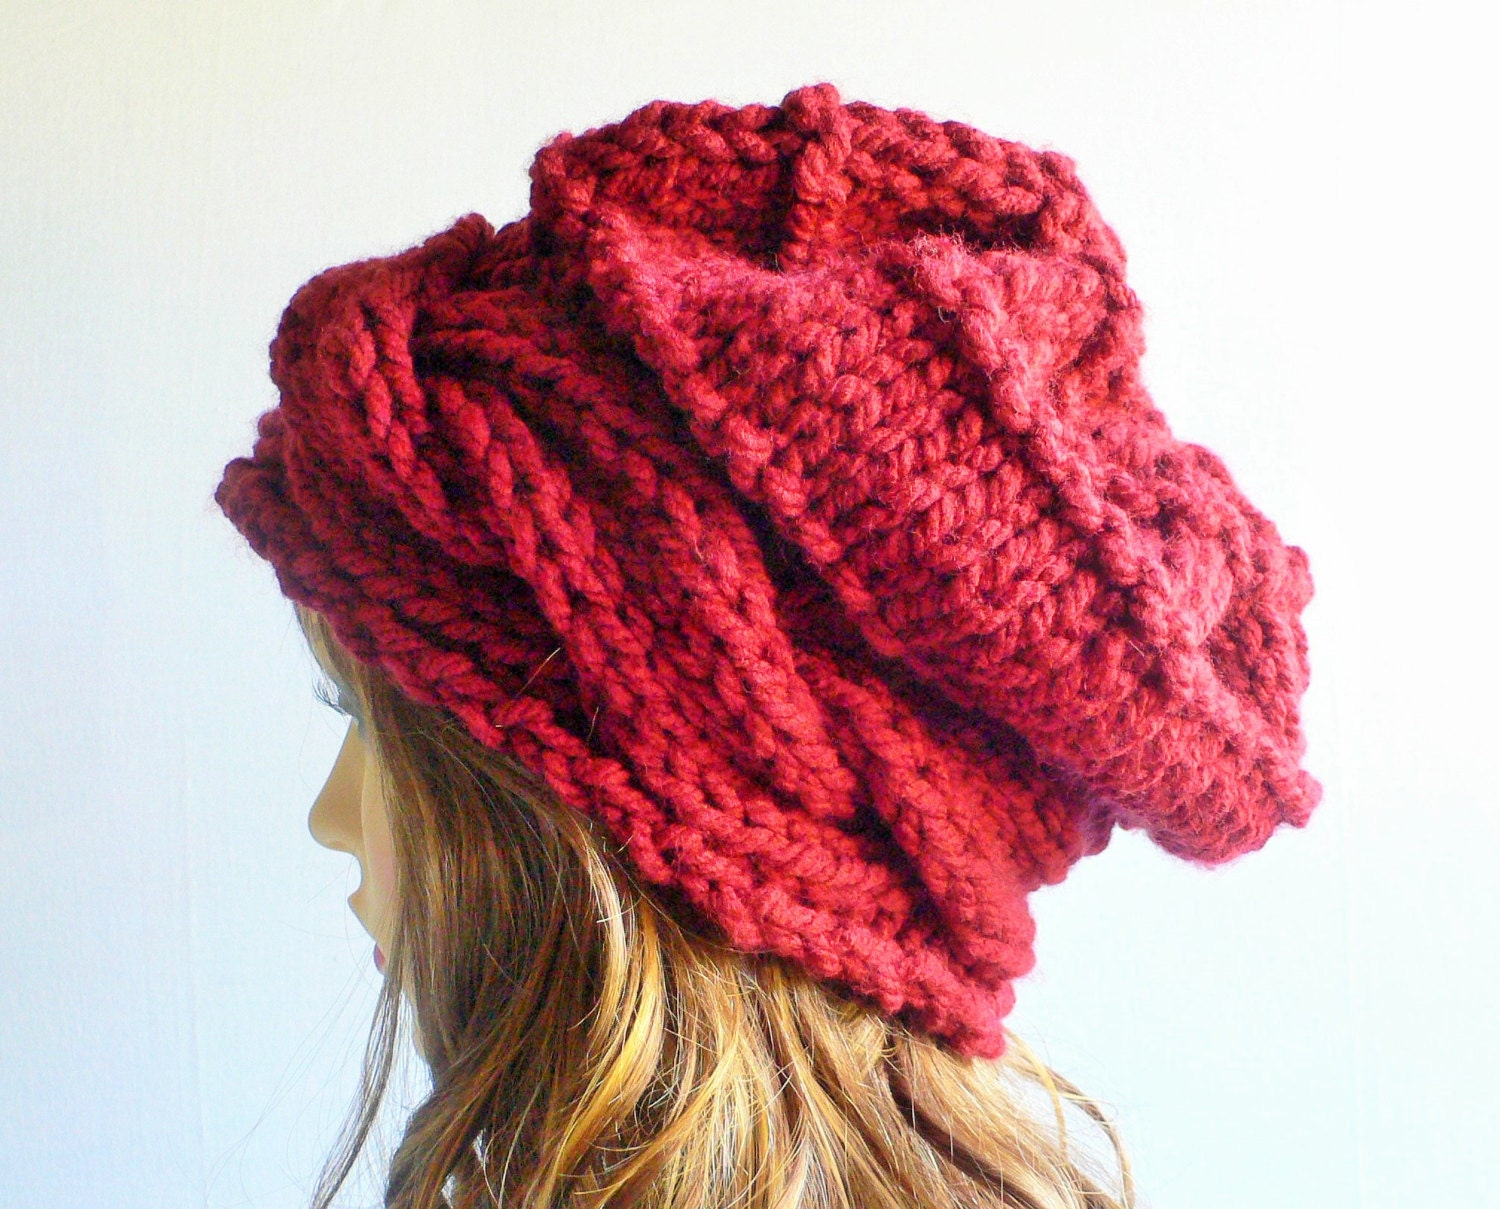 Red Knit Hat Knit Hat Women Red Hat Cable Knit Beanie